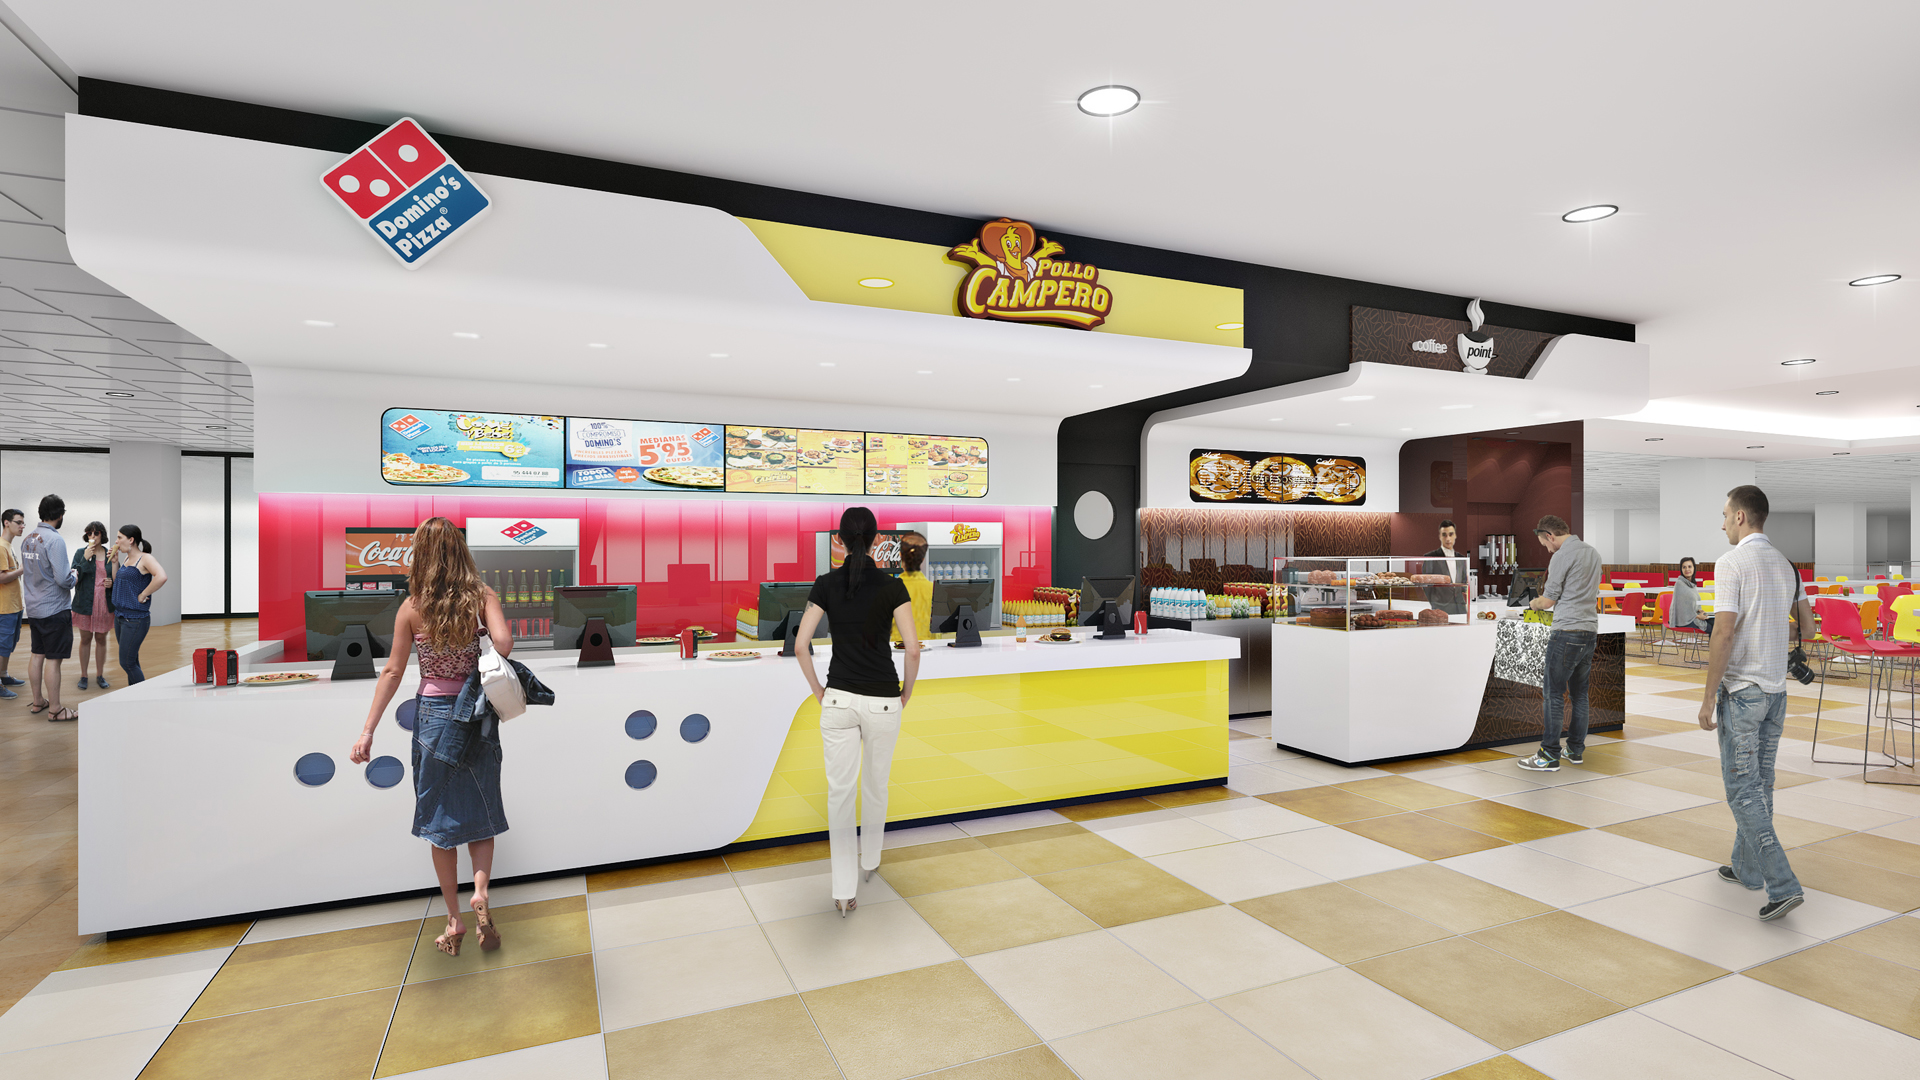 Domino's Pizza+Pollo Campero, Palama Mallorca Airport